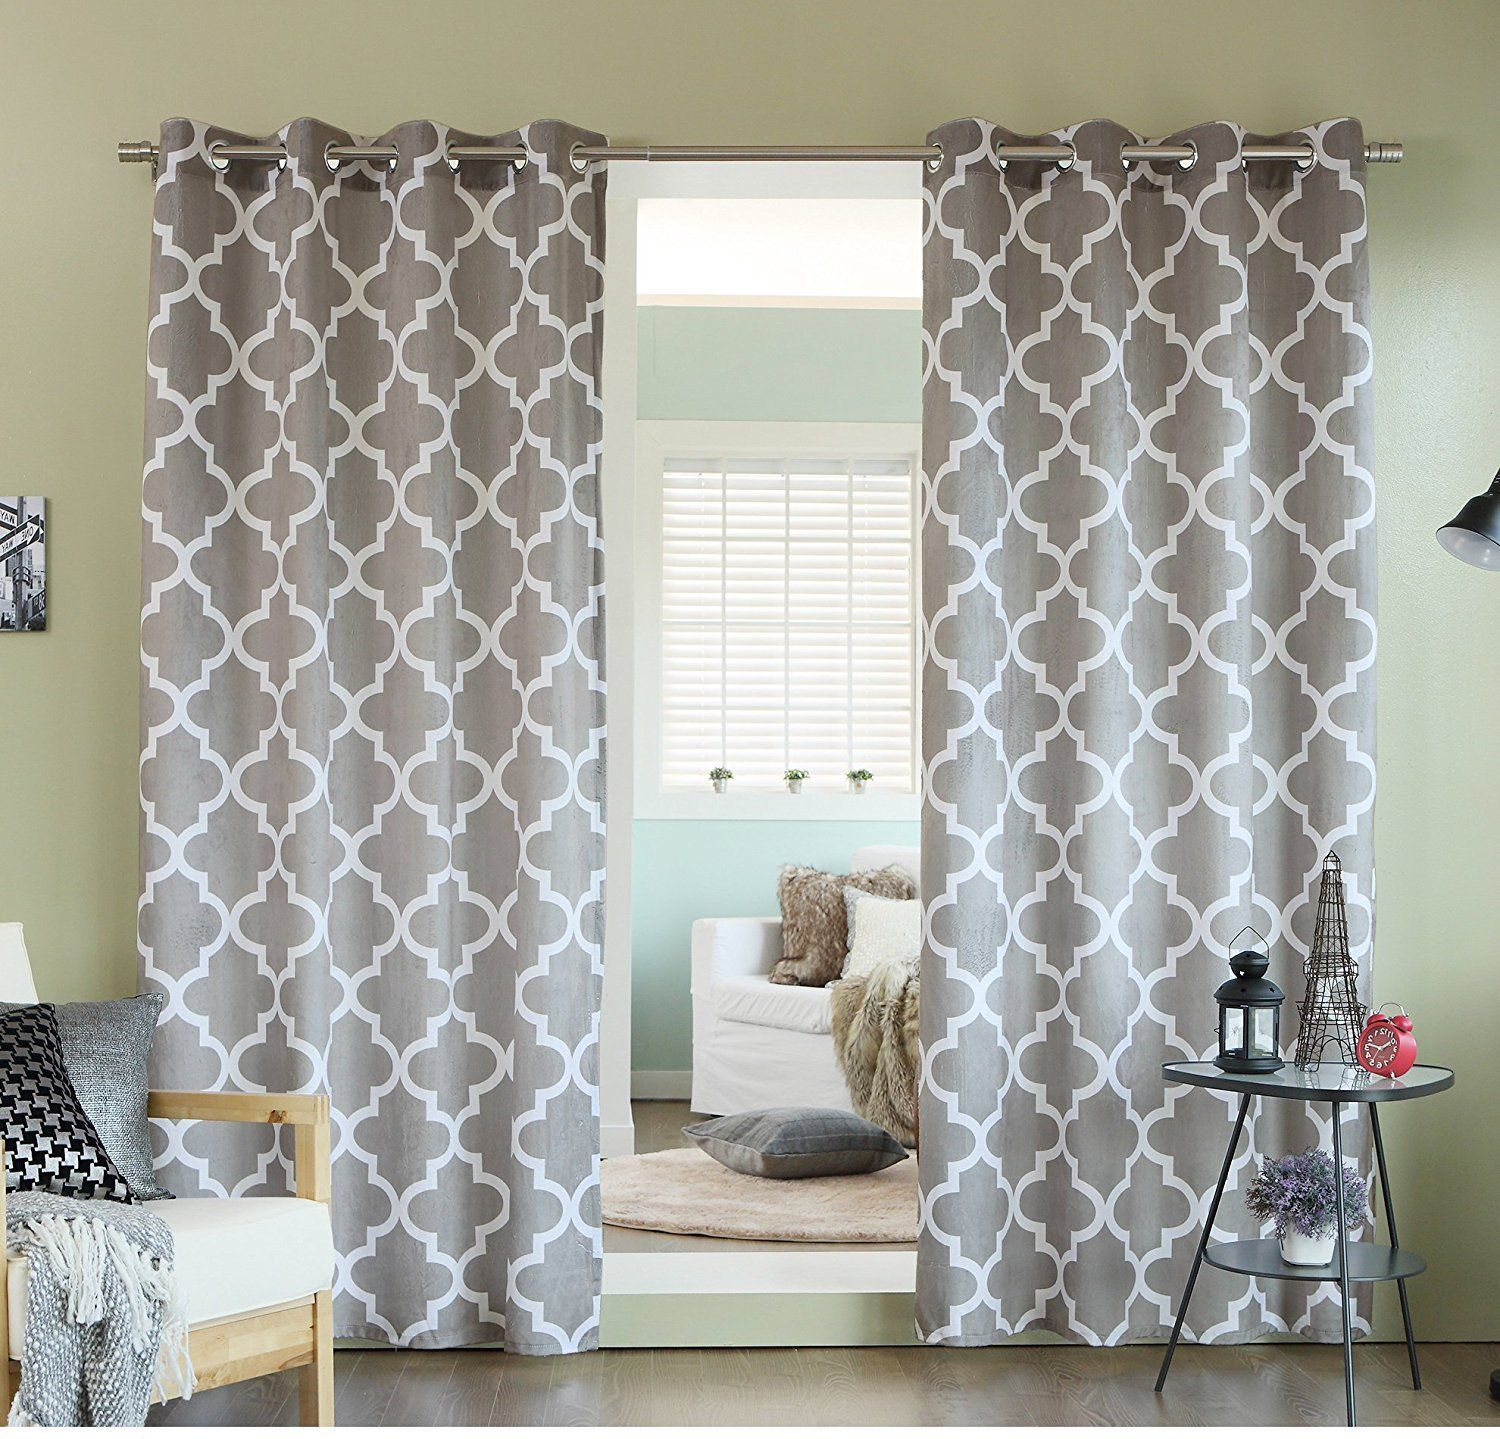 curtain encouragement striped plus designs grey black large blue fantastic rc patterned trelliskhaki navy size curtains pattern grommets as and bedroom gray of tan then white marvelous interior trellis wells together